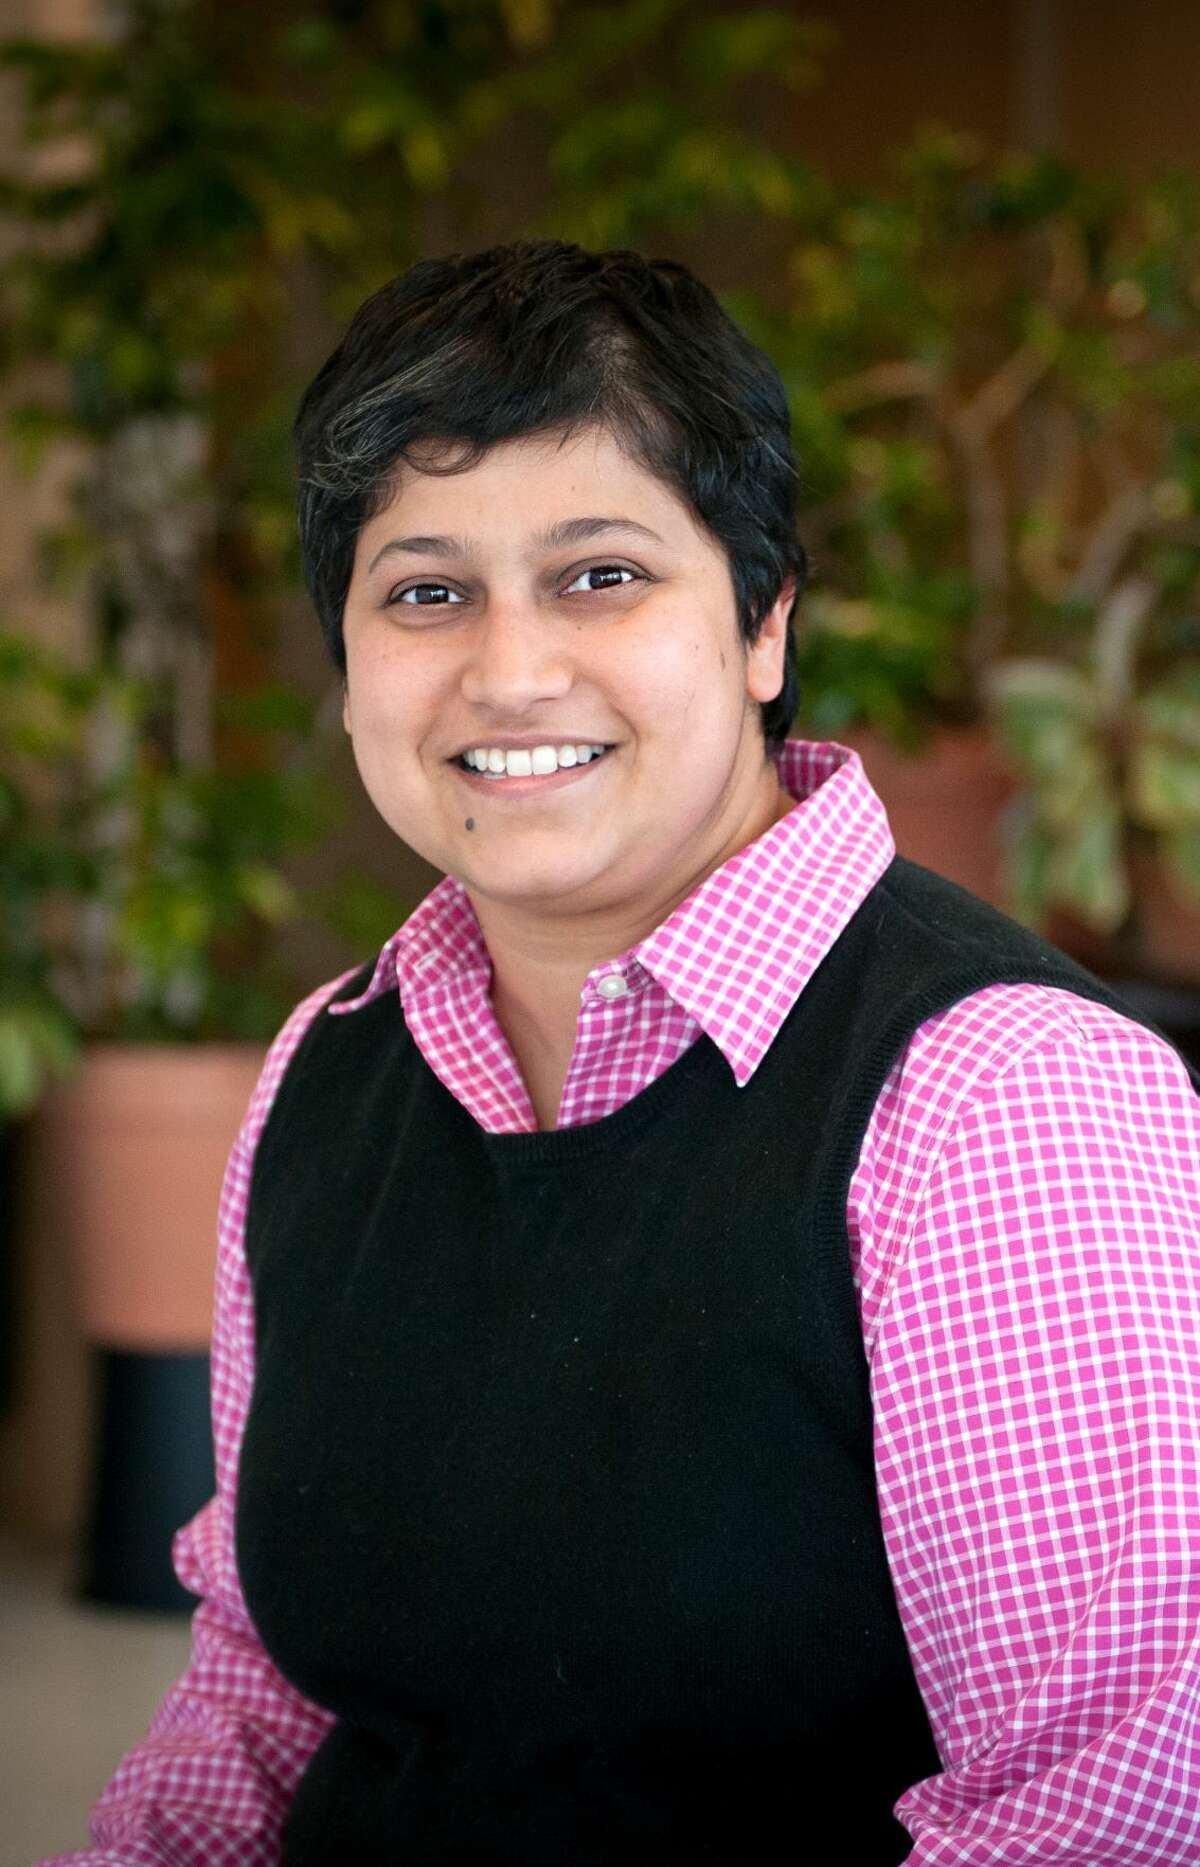 Minita Sanghvi is the Democratic candidate for Commissioner of Finance in Saratoga Springs.